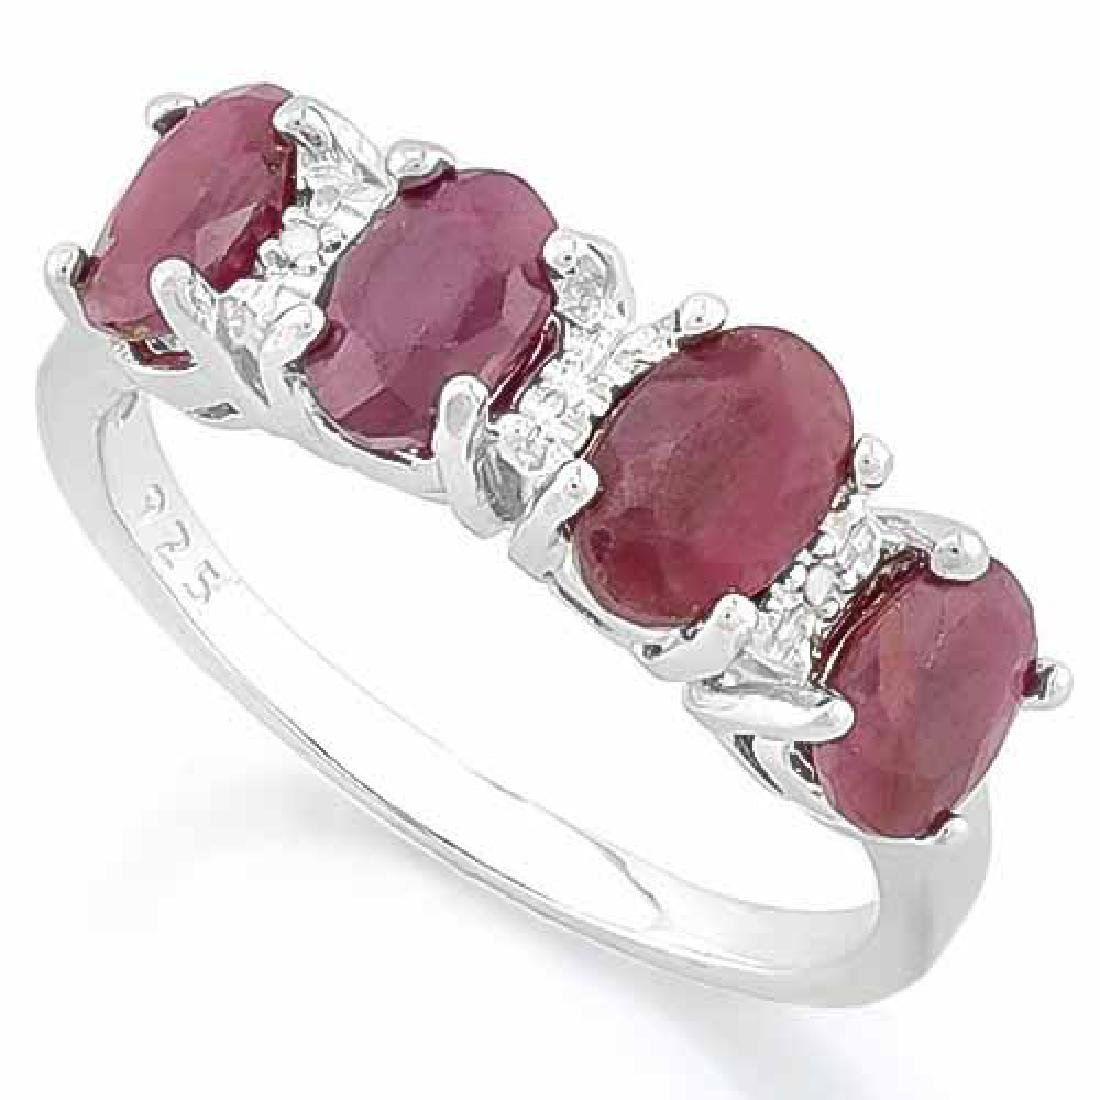 2 1/2 CARAT RUBY & DIAMOND 925 STERLING SILVER RING